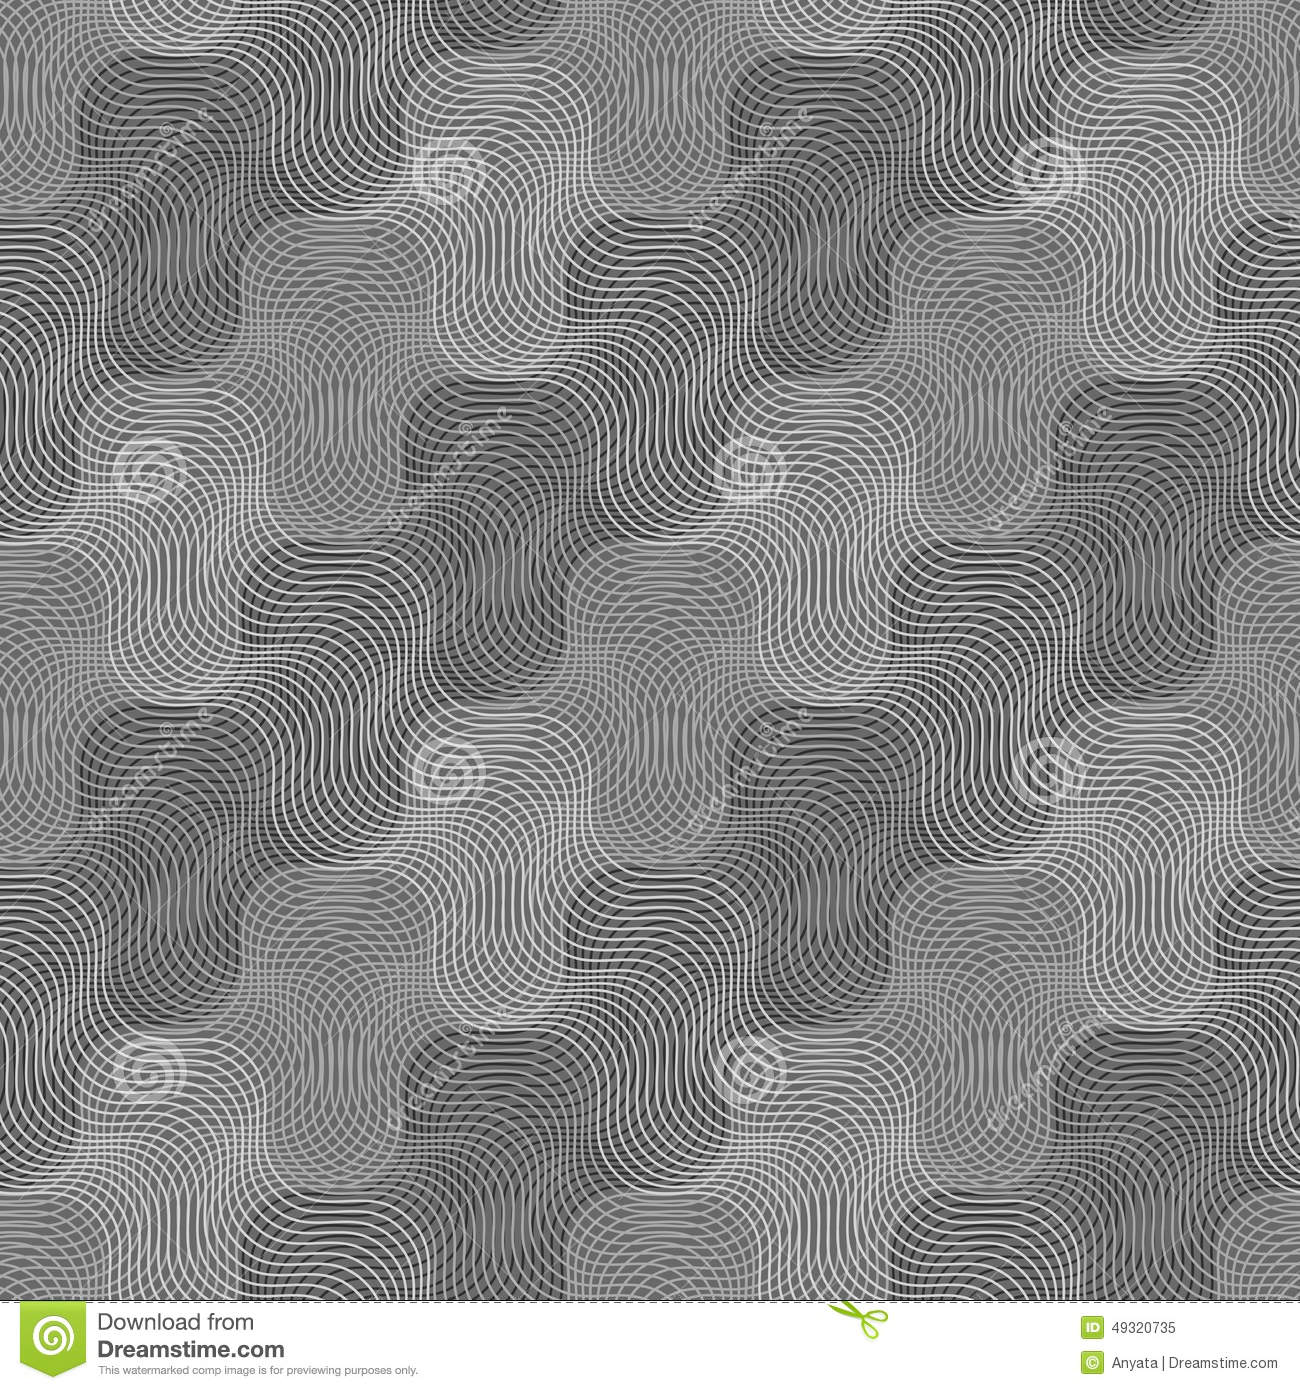 Repeating Ornament Intersecting Light And Dark Gray